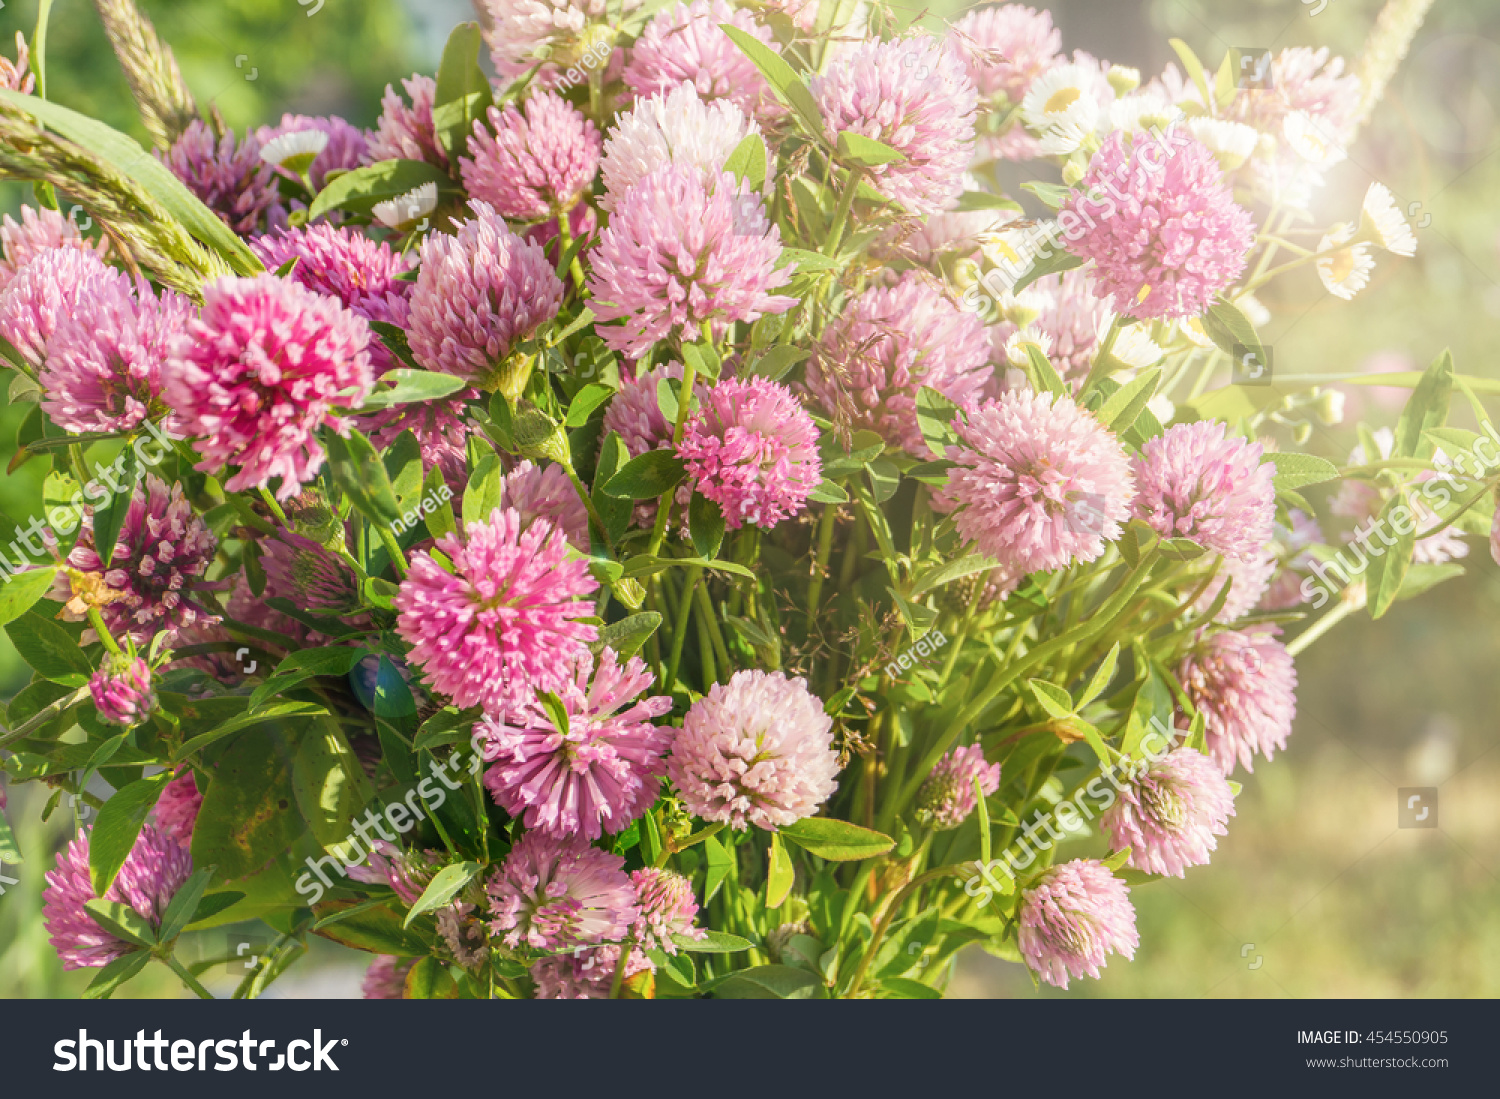 Royalty Free A Wild Bouquet Of Pink Clover Flower On 454550905